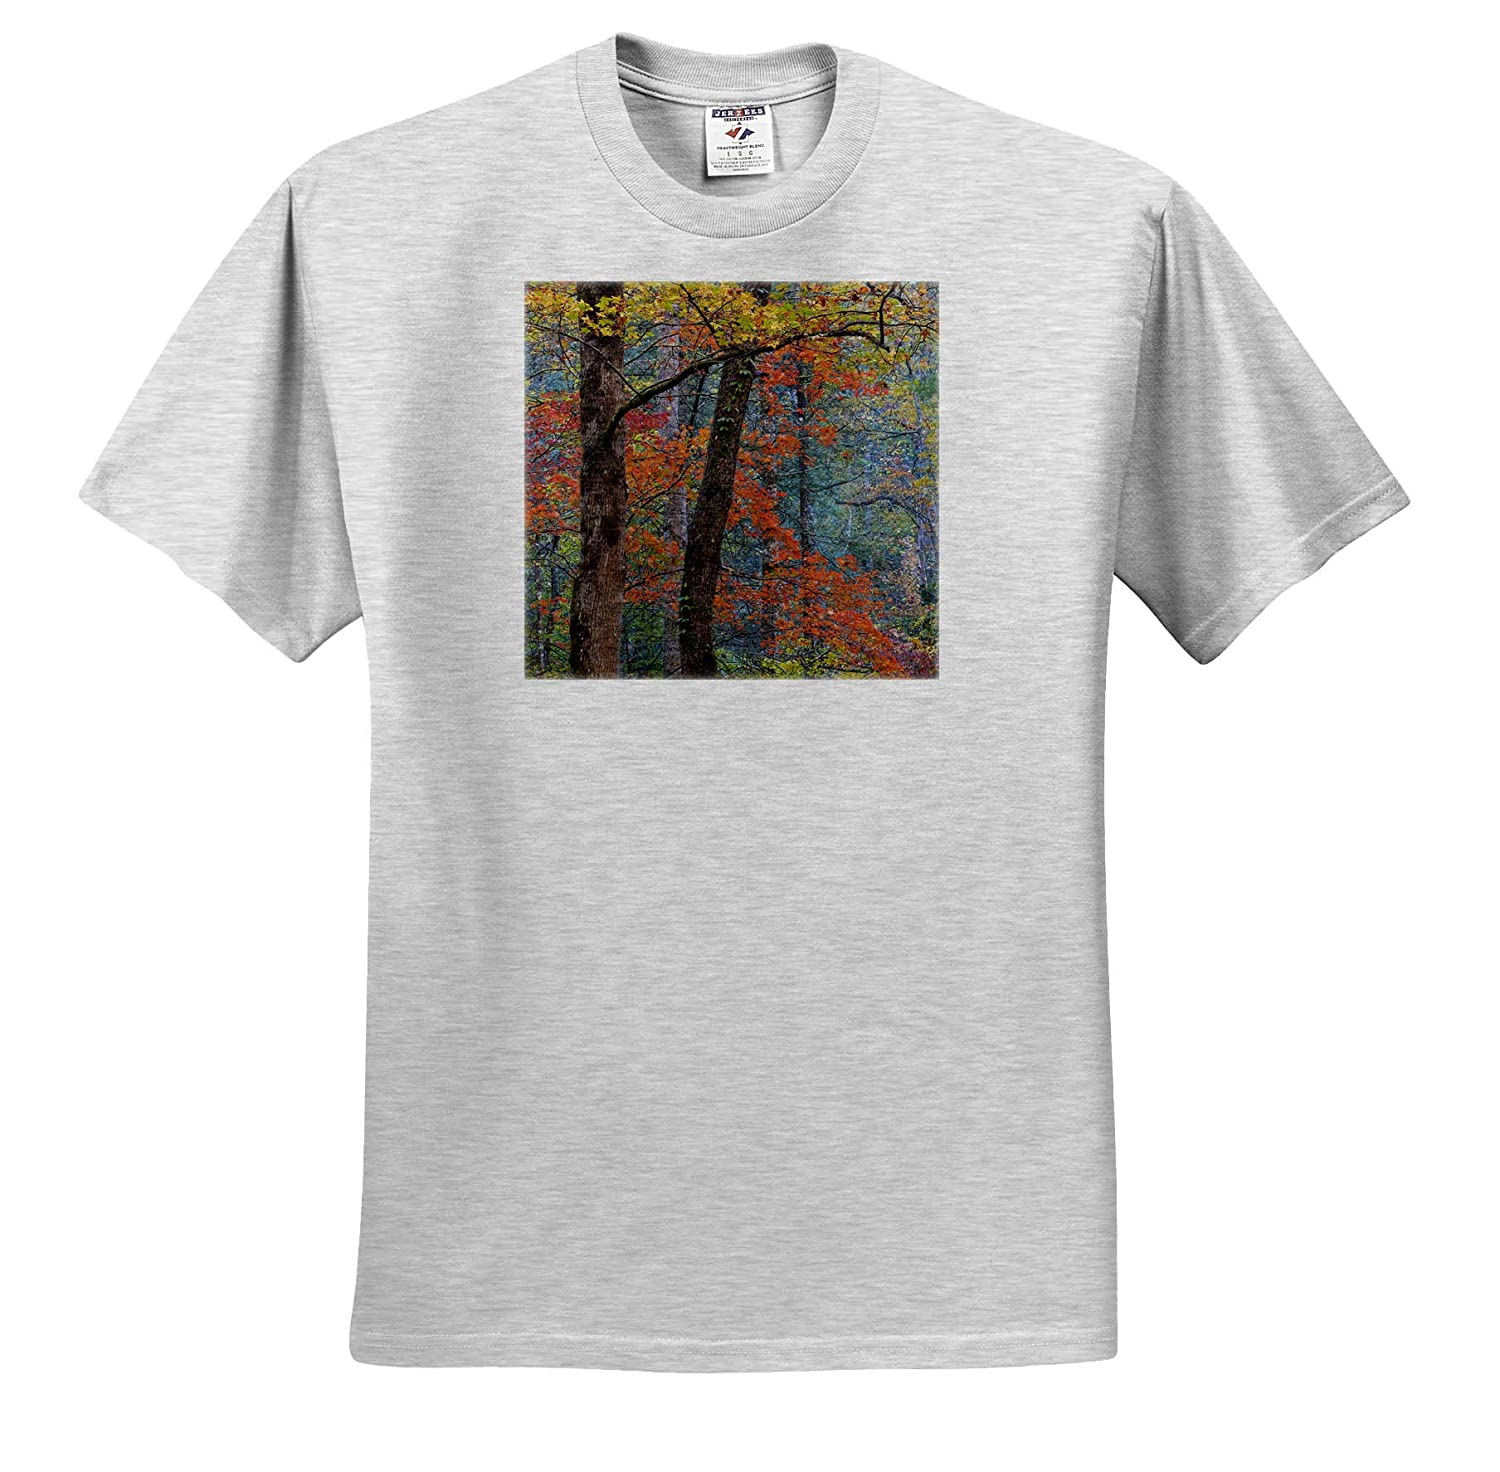 Autumn Tennessee 3dRose Danita Delimont - Adult T-Shirt XL ts/_315020 Forest Scenic in Autumn USA